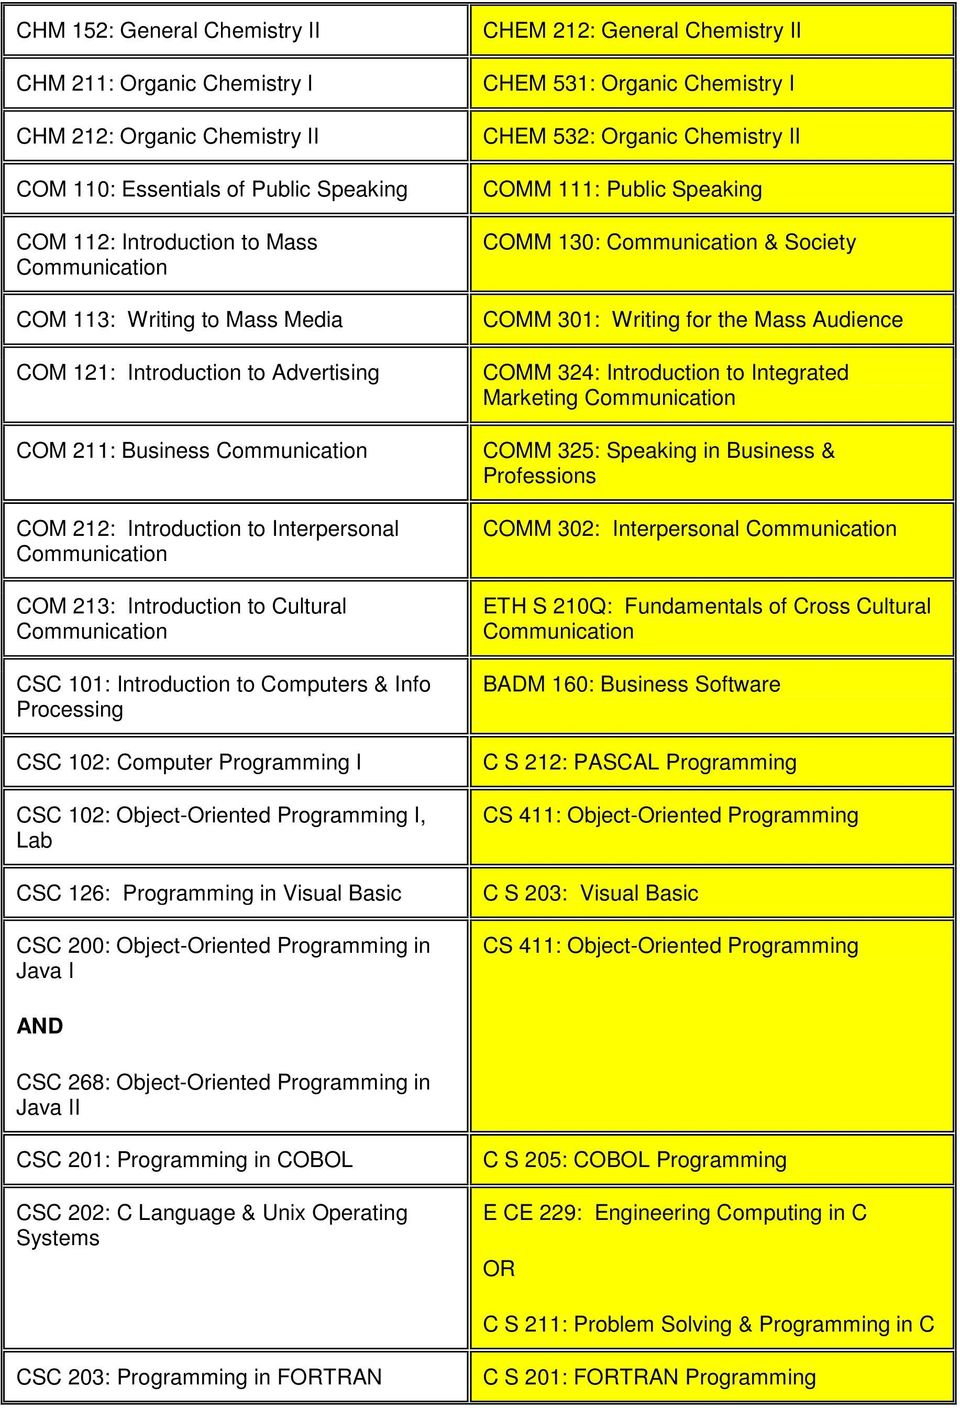 to Computers & Info Processing CSC 102: Computer Programming I CSC 102: Object-Oriented Programming I, CSC 126: Programming in Visual Basic CSC 200: Object-Oriented Programming in Java I CHEM 212: